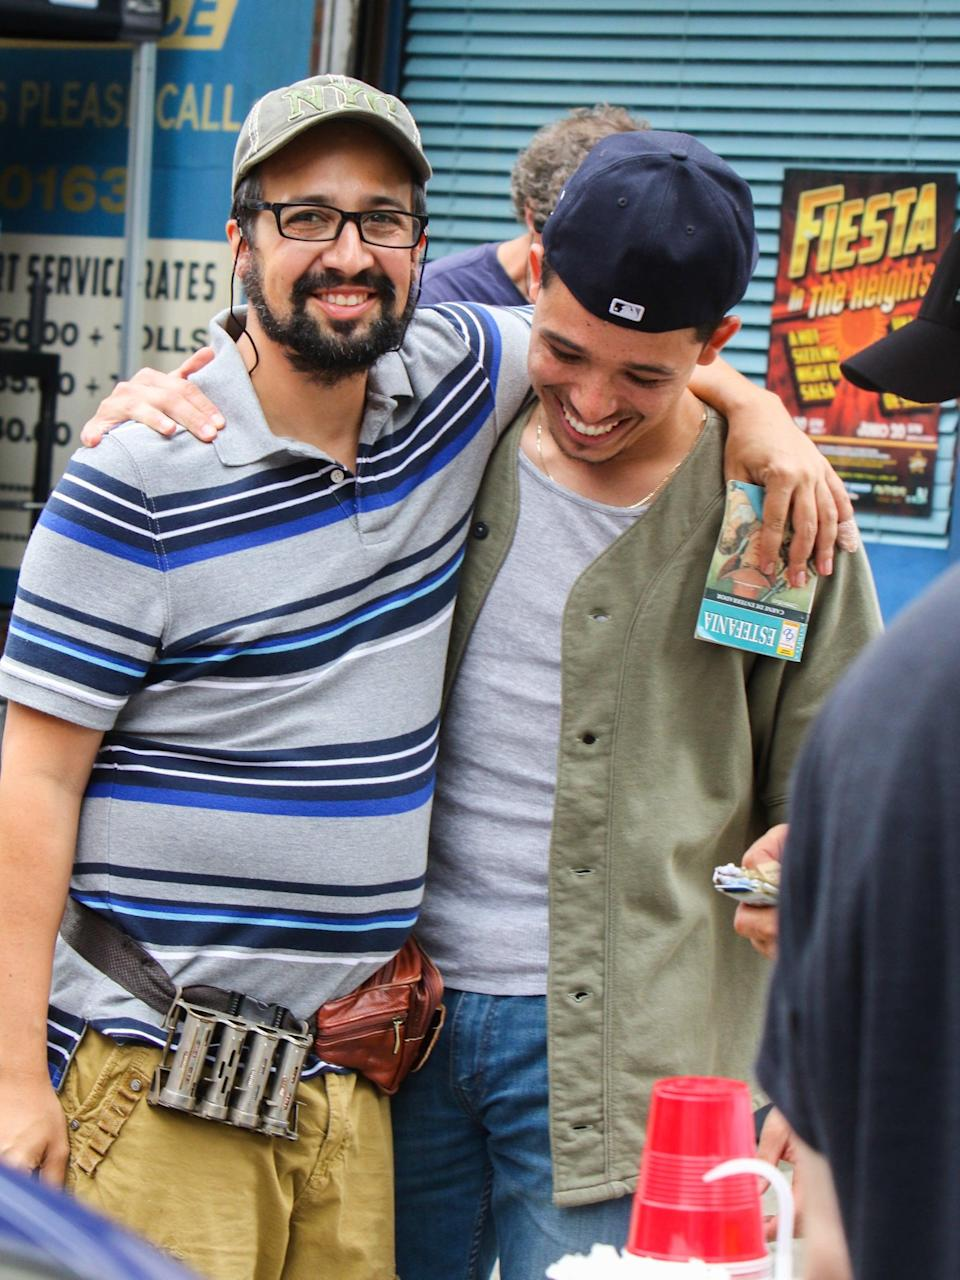 When They Shared a Moment on the Set of In the Heights